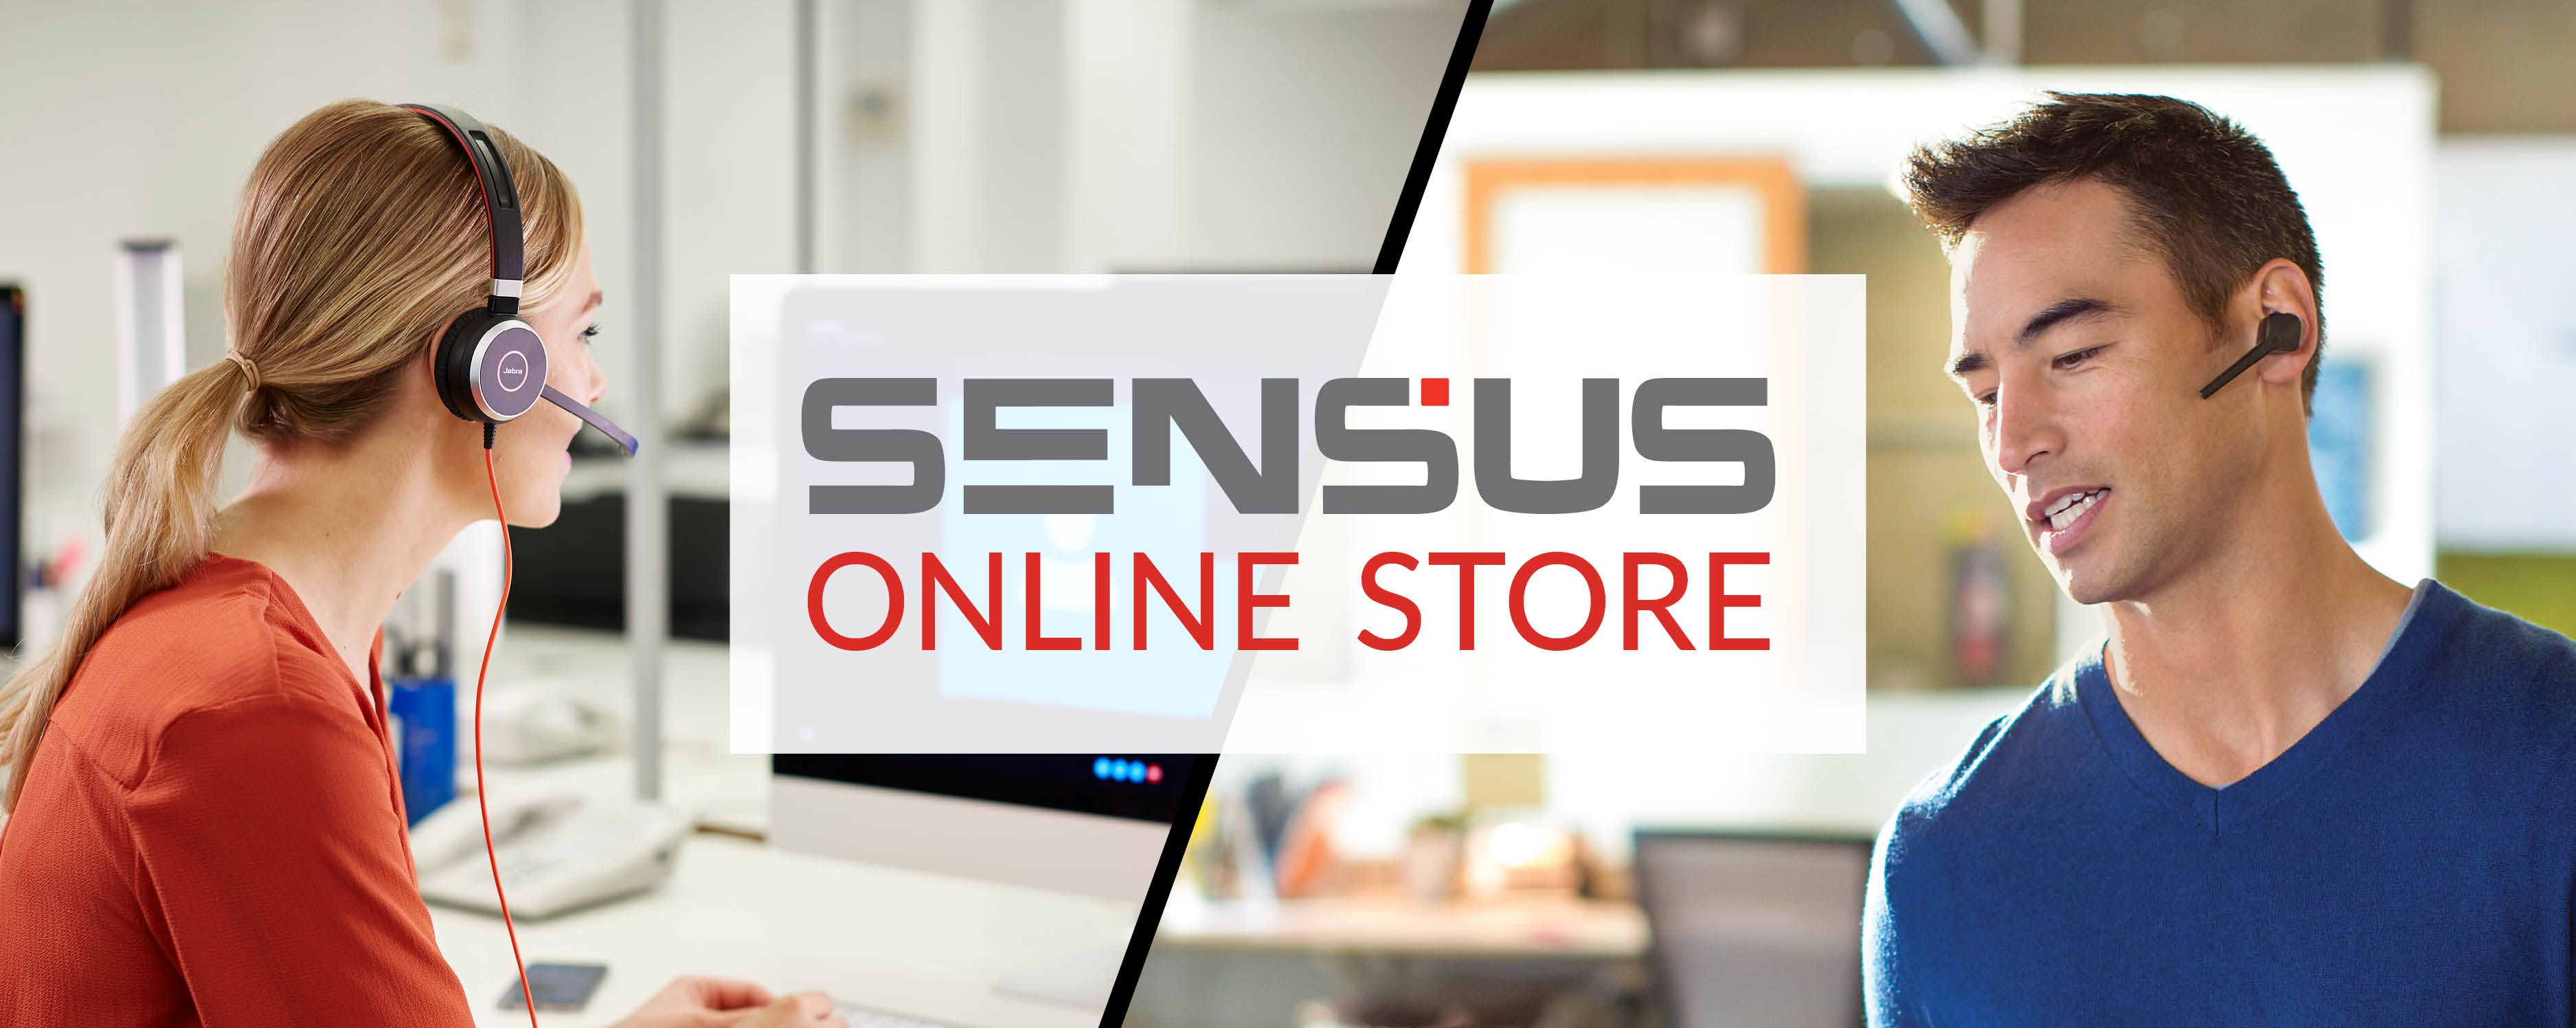 Welcome SENSUS Online Store